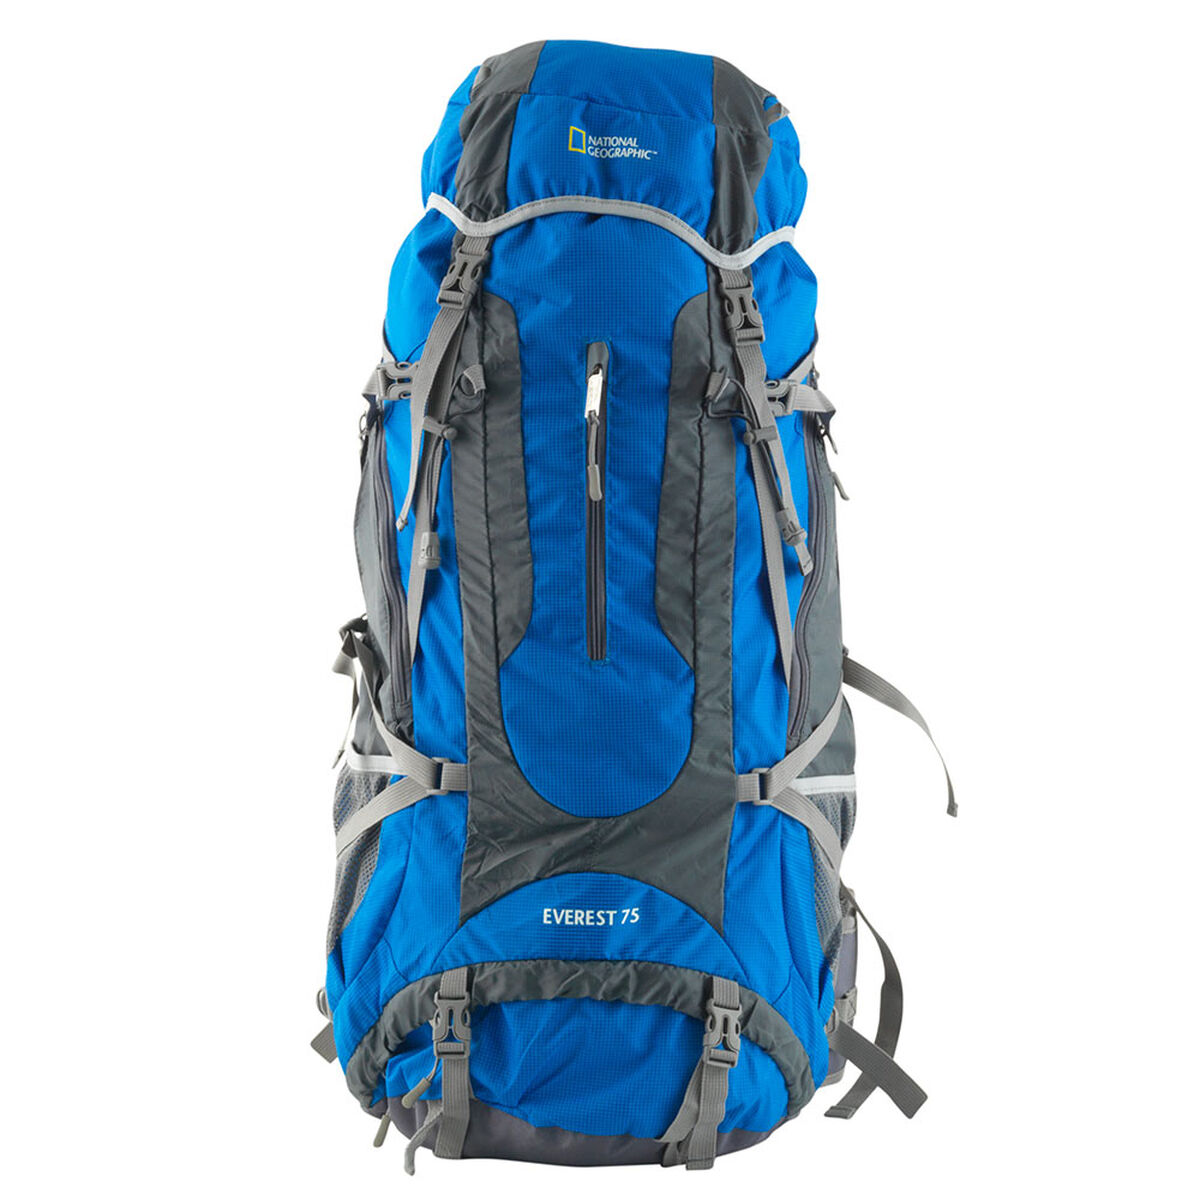 Mochila National Geographic Everest 75L